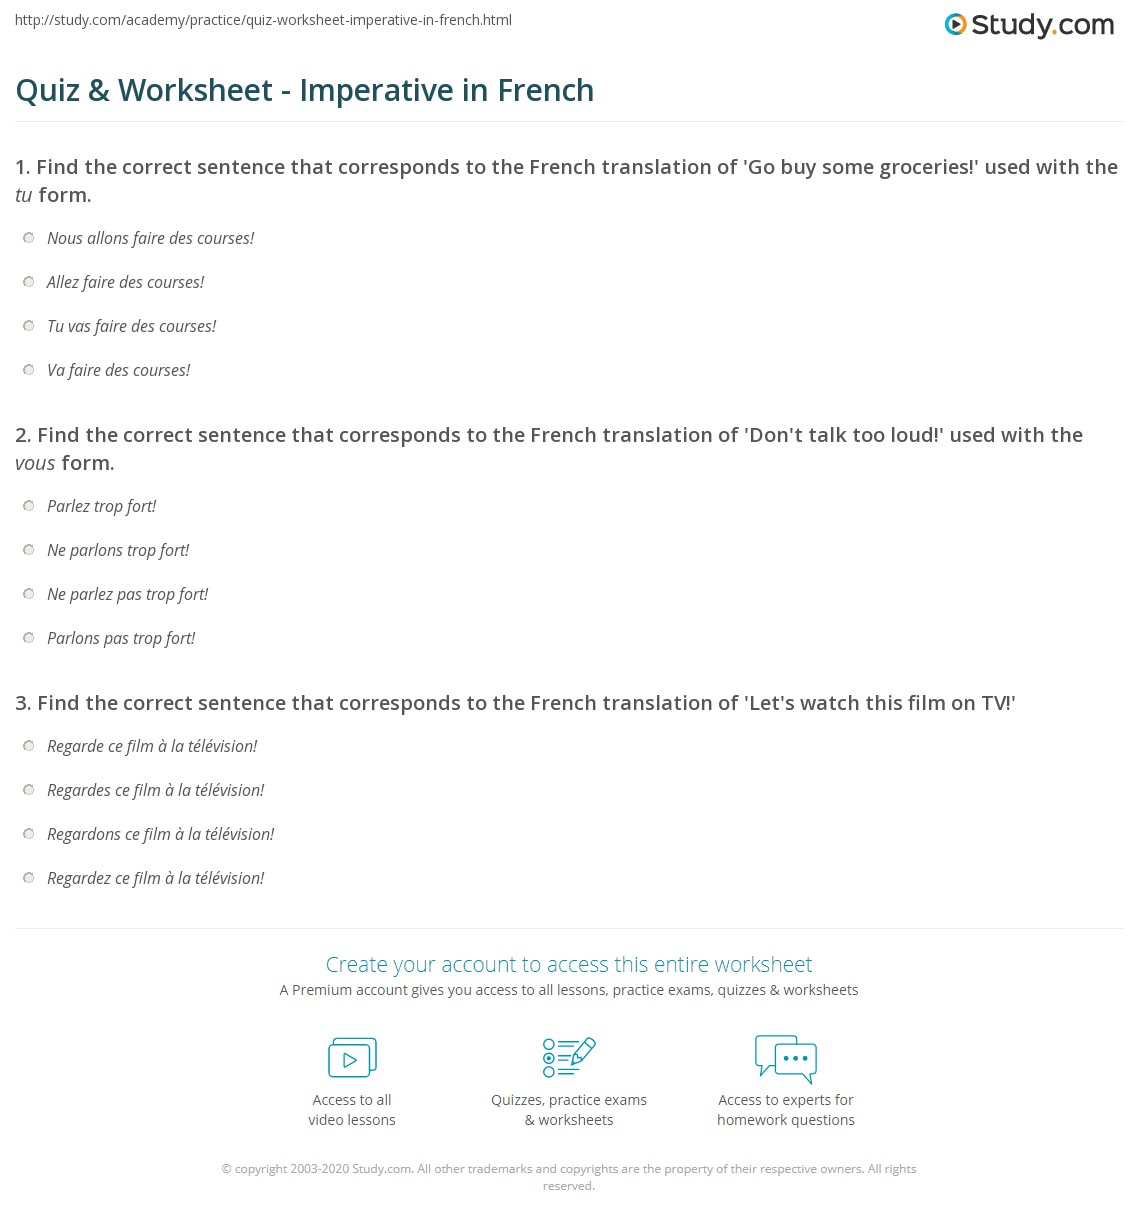 Quiz Worksheet Imperative in French – French Worksheets